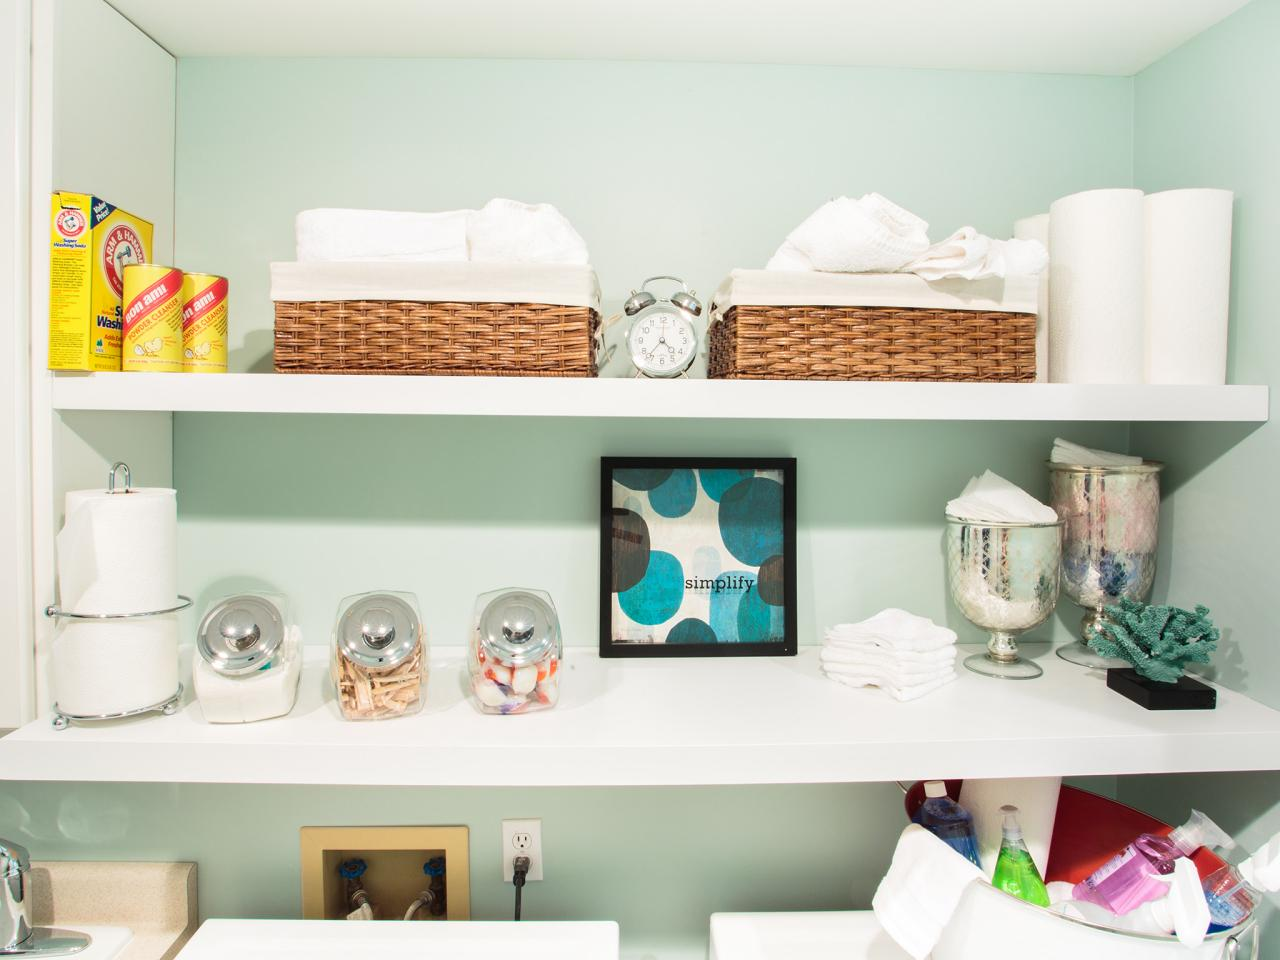 Laundry Room Shelves With Baskets